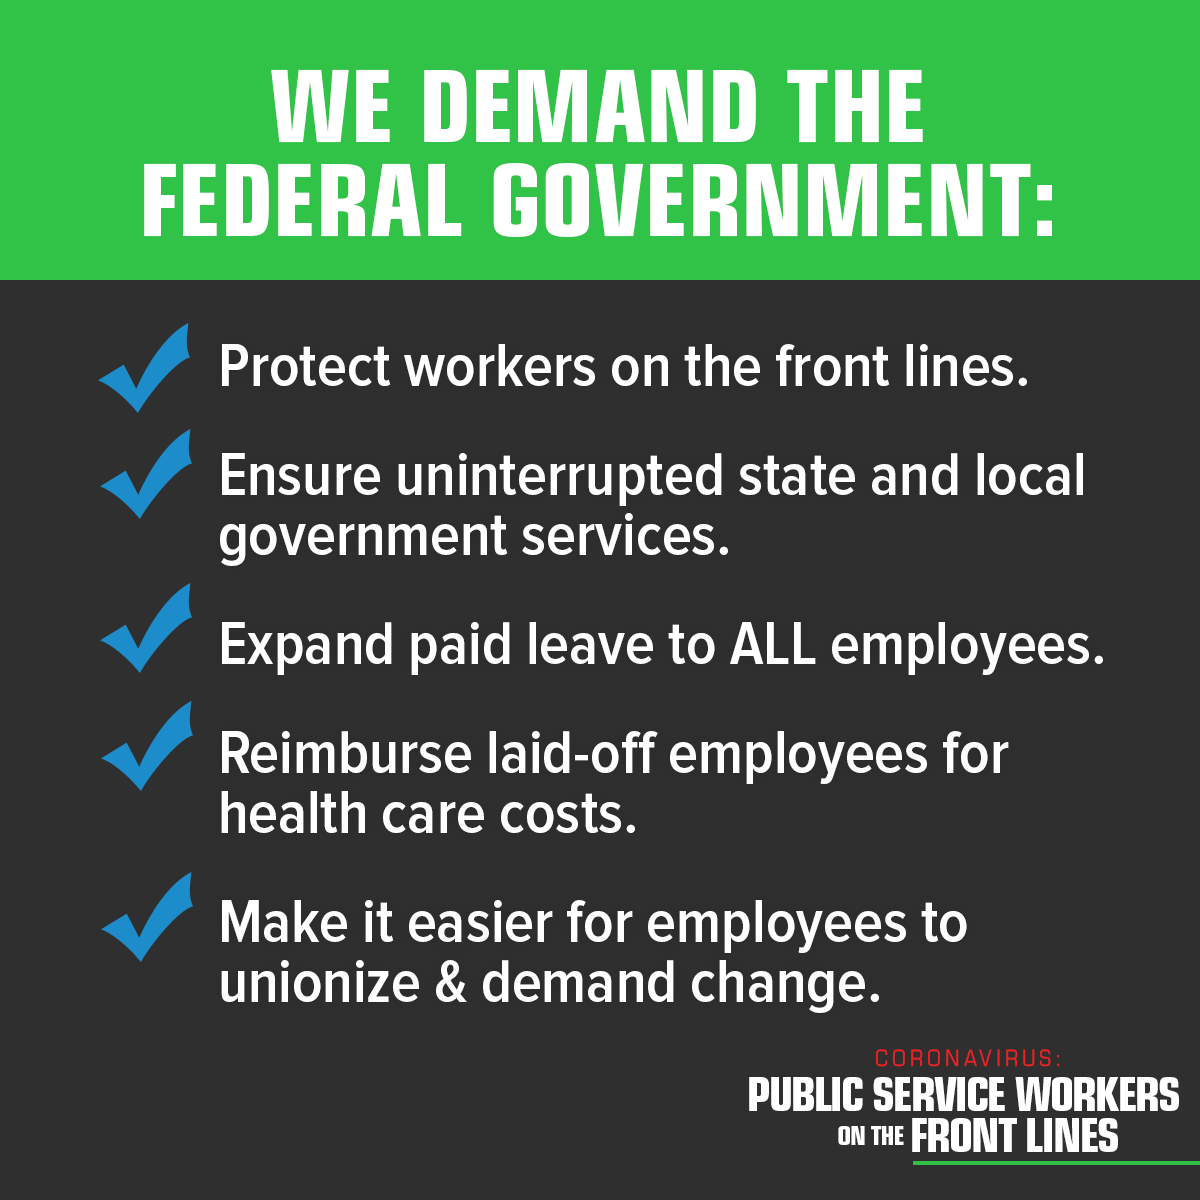 HOPE Members stand with AFSCME Brothers and Sisters across the Country to push Congress to Fund the Front Lines. Where we go one, we go all!